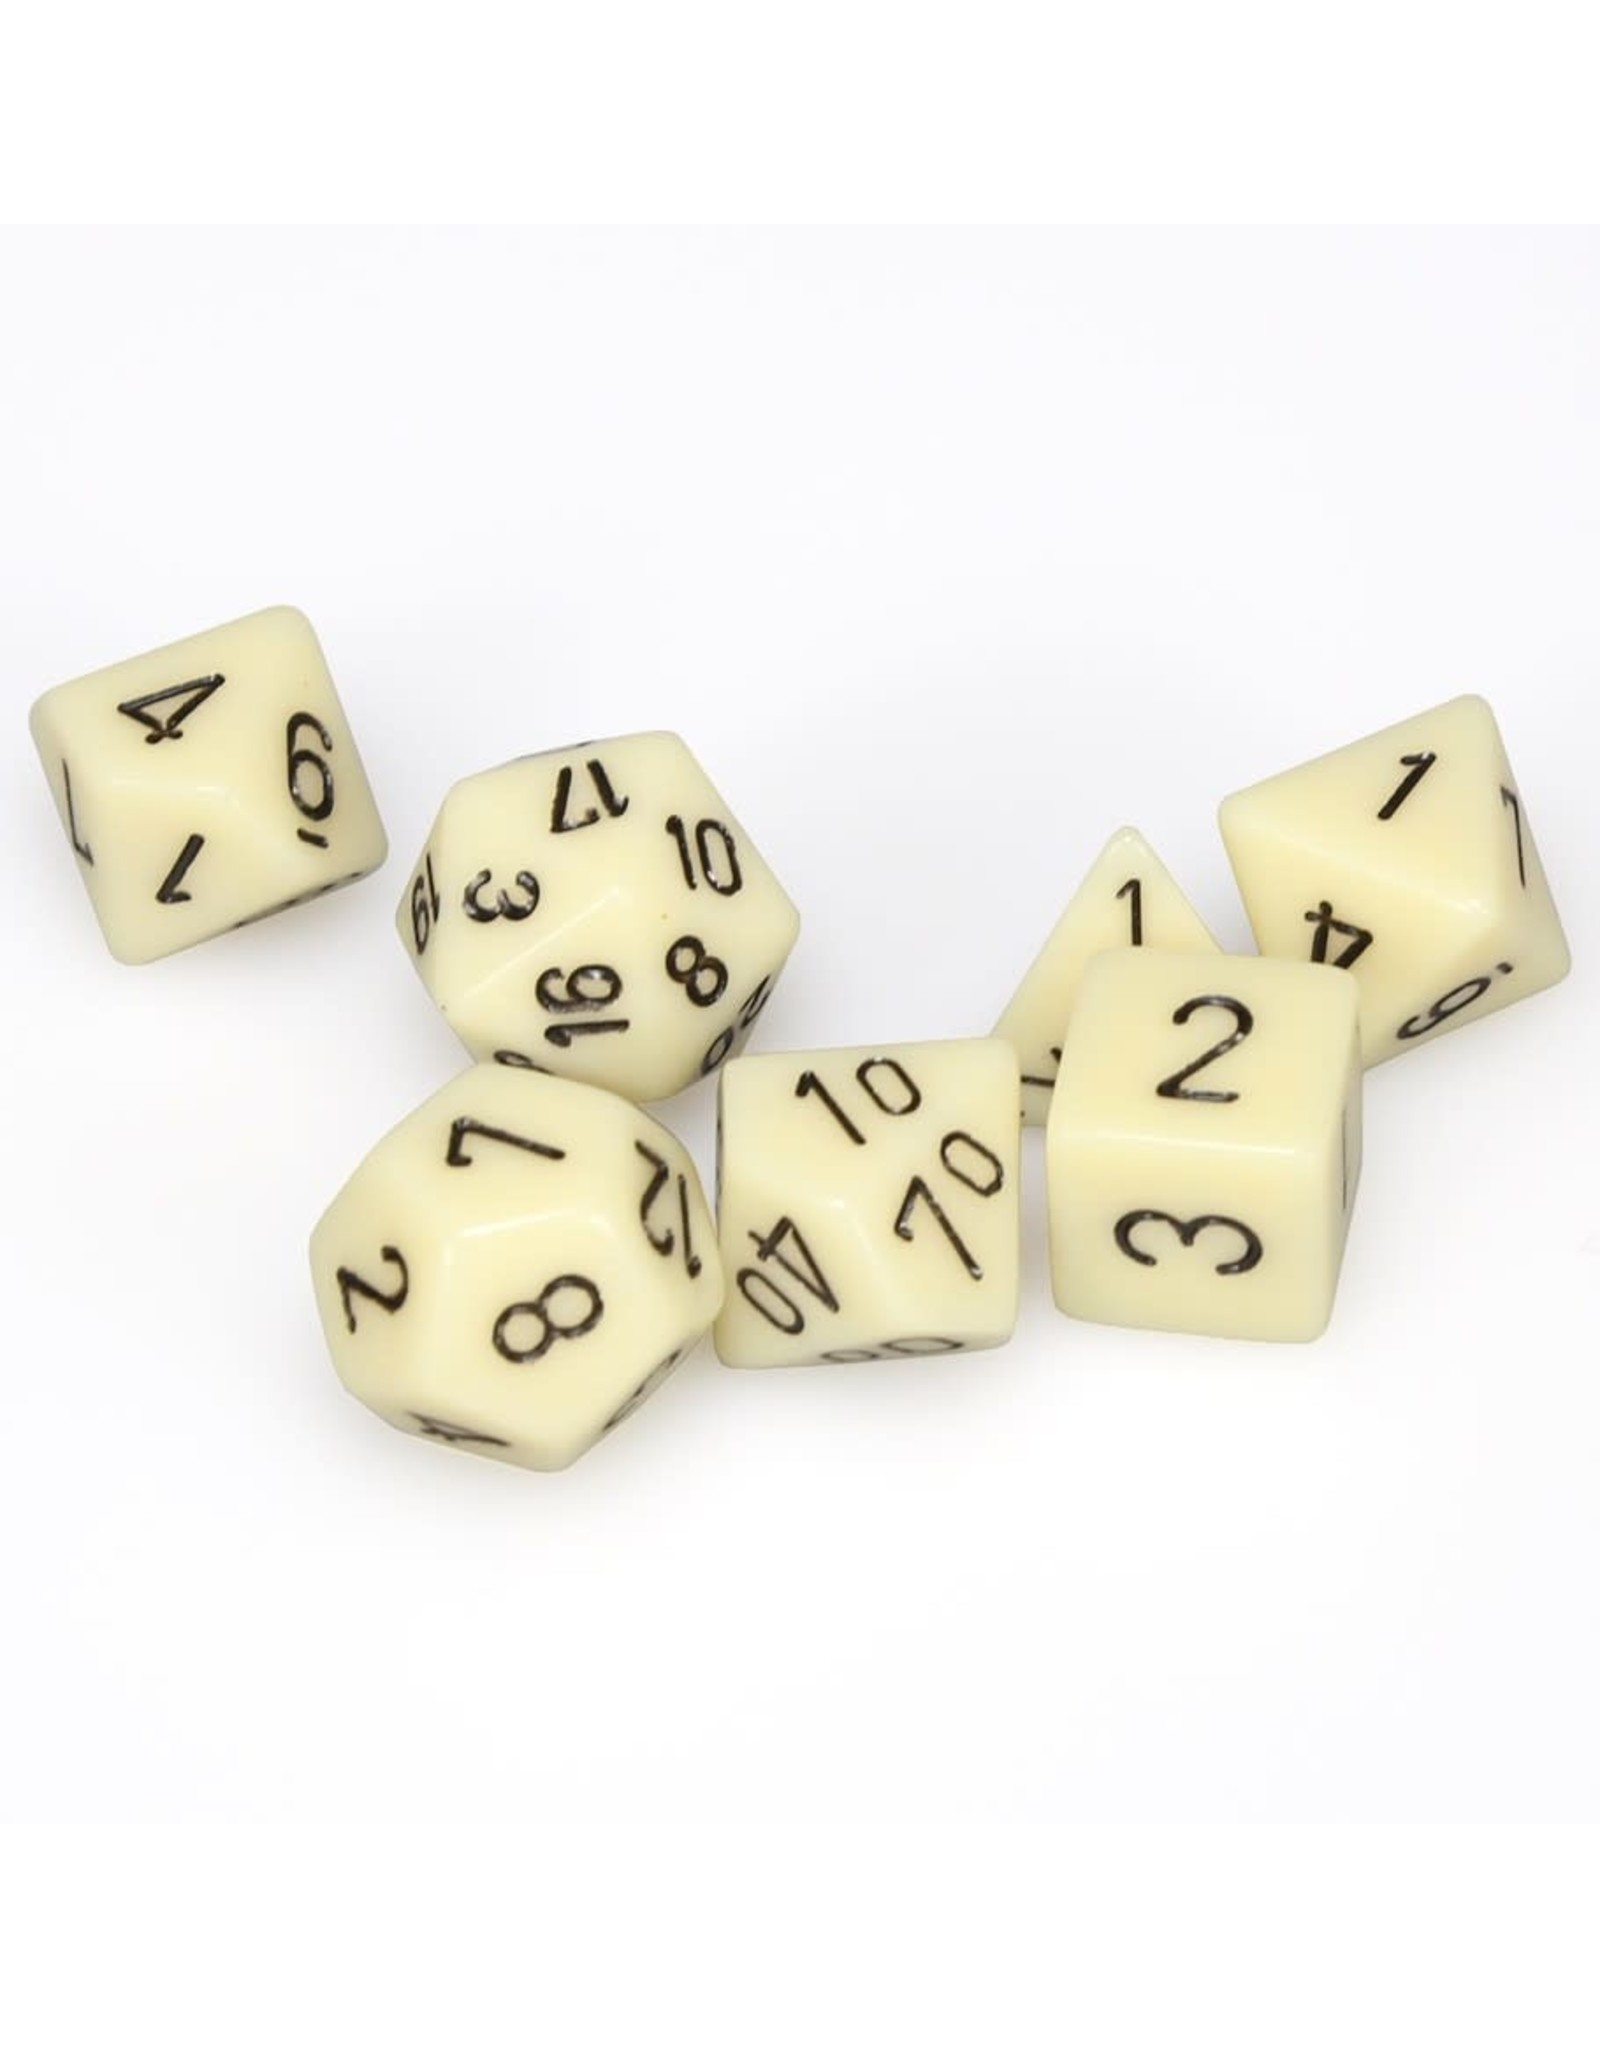 Chessex 7-set Cube Opaque Ivory/Black